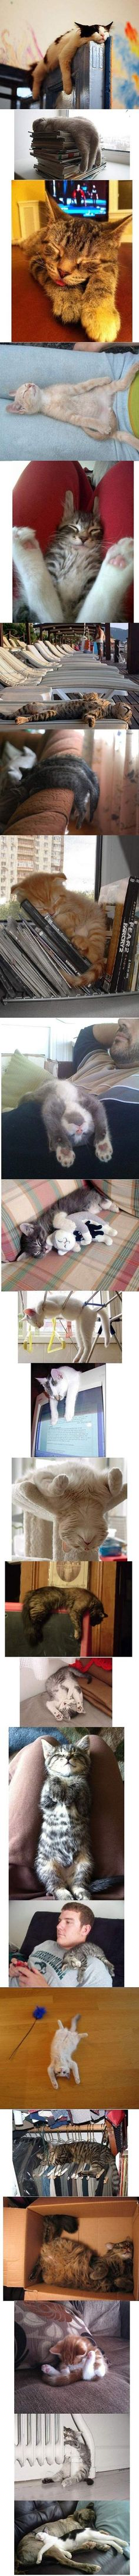 Funny - Cats sleep anywhere - www.funny-pictures-blog.com